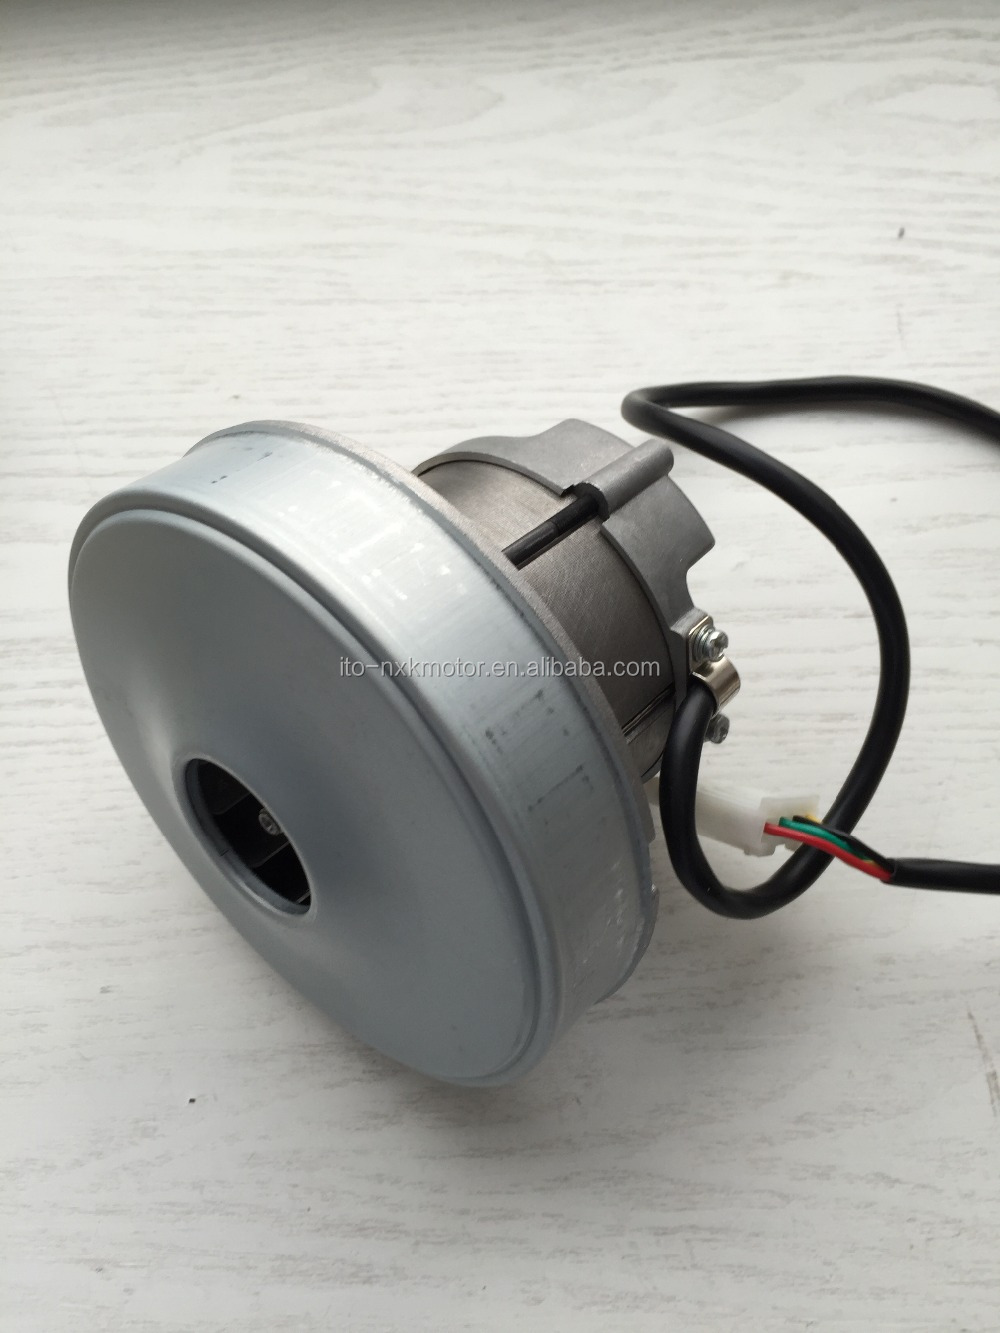 Gold Supplier China Electric Bypass Vacuum Cleaner Motor